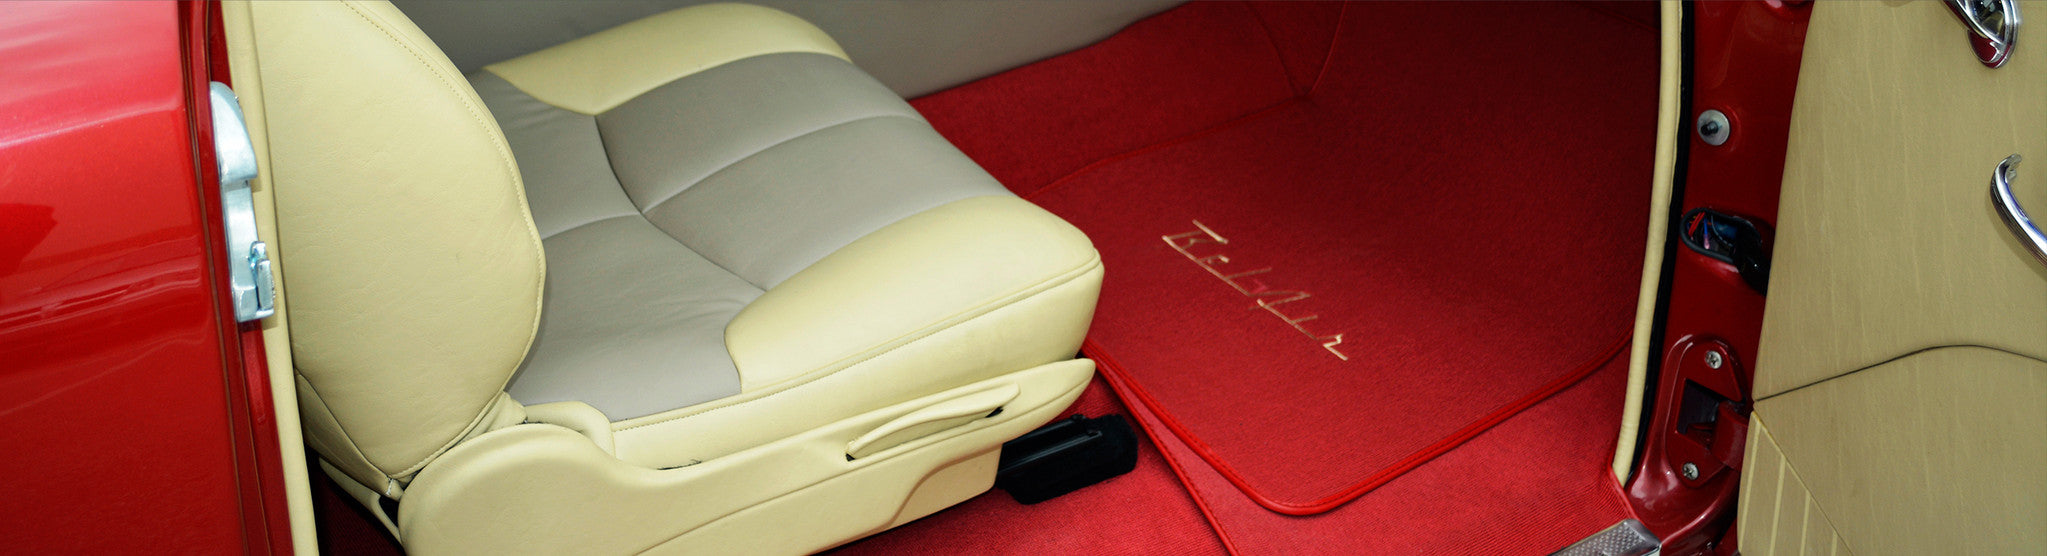 The automotive flooring experts.